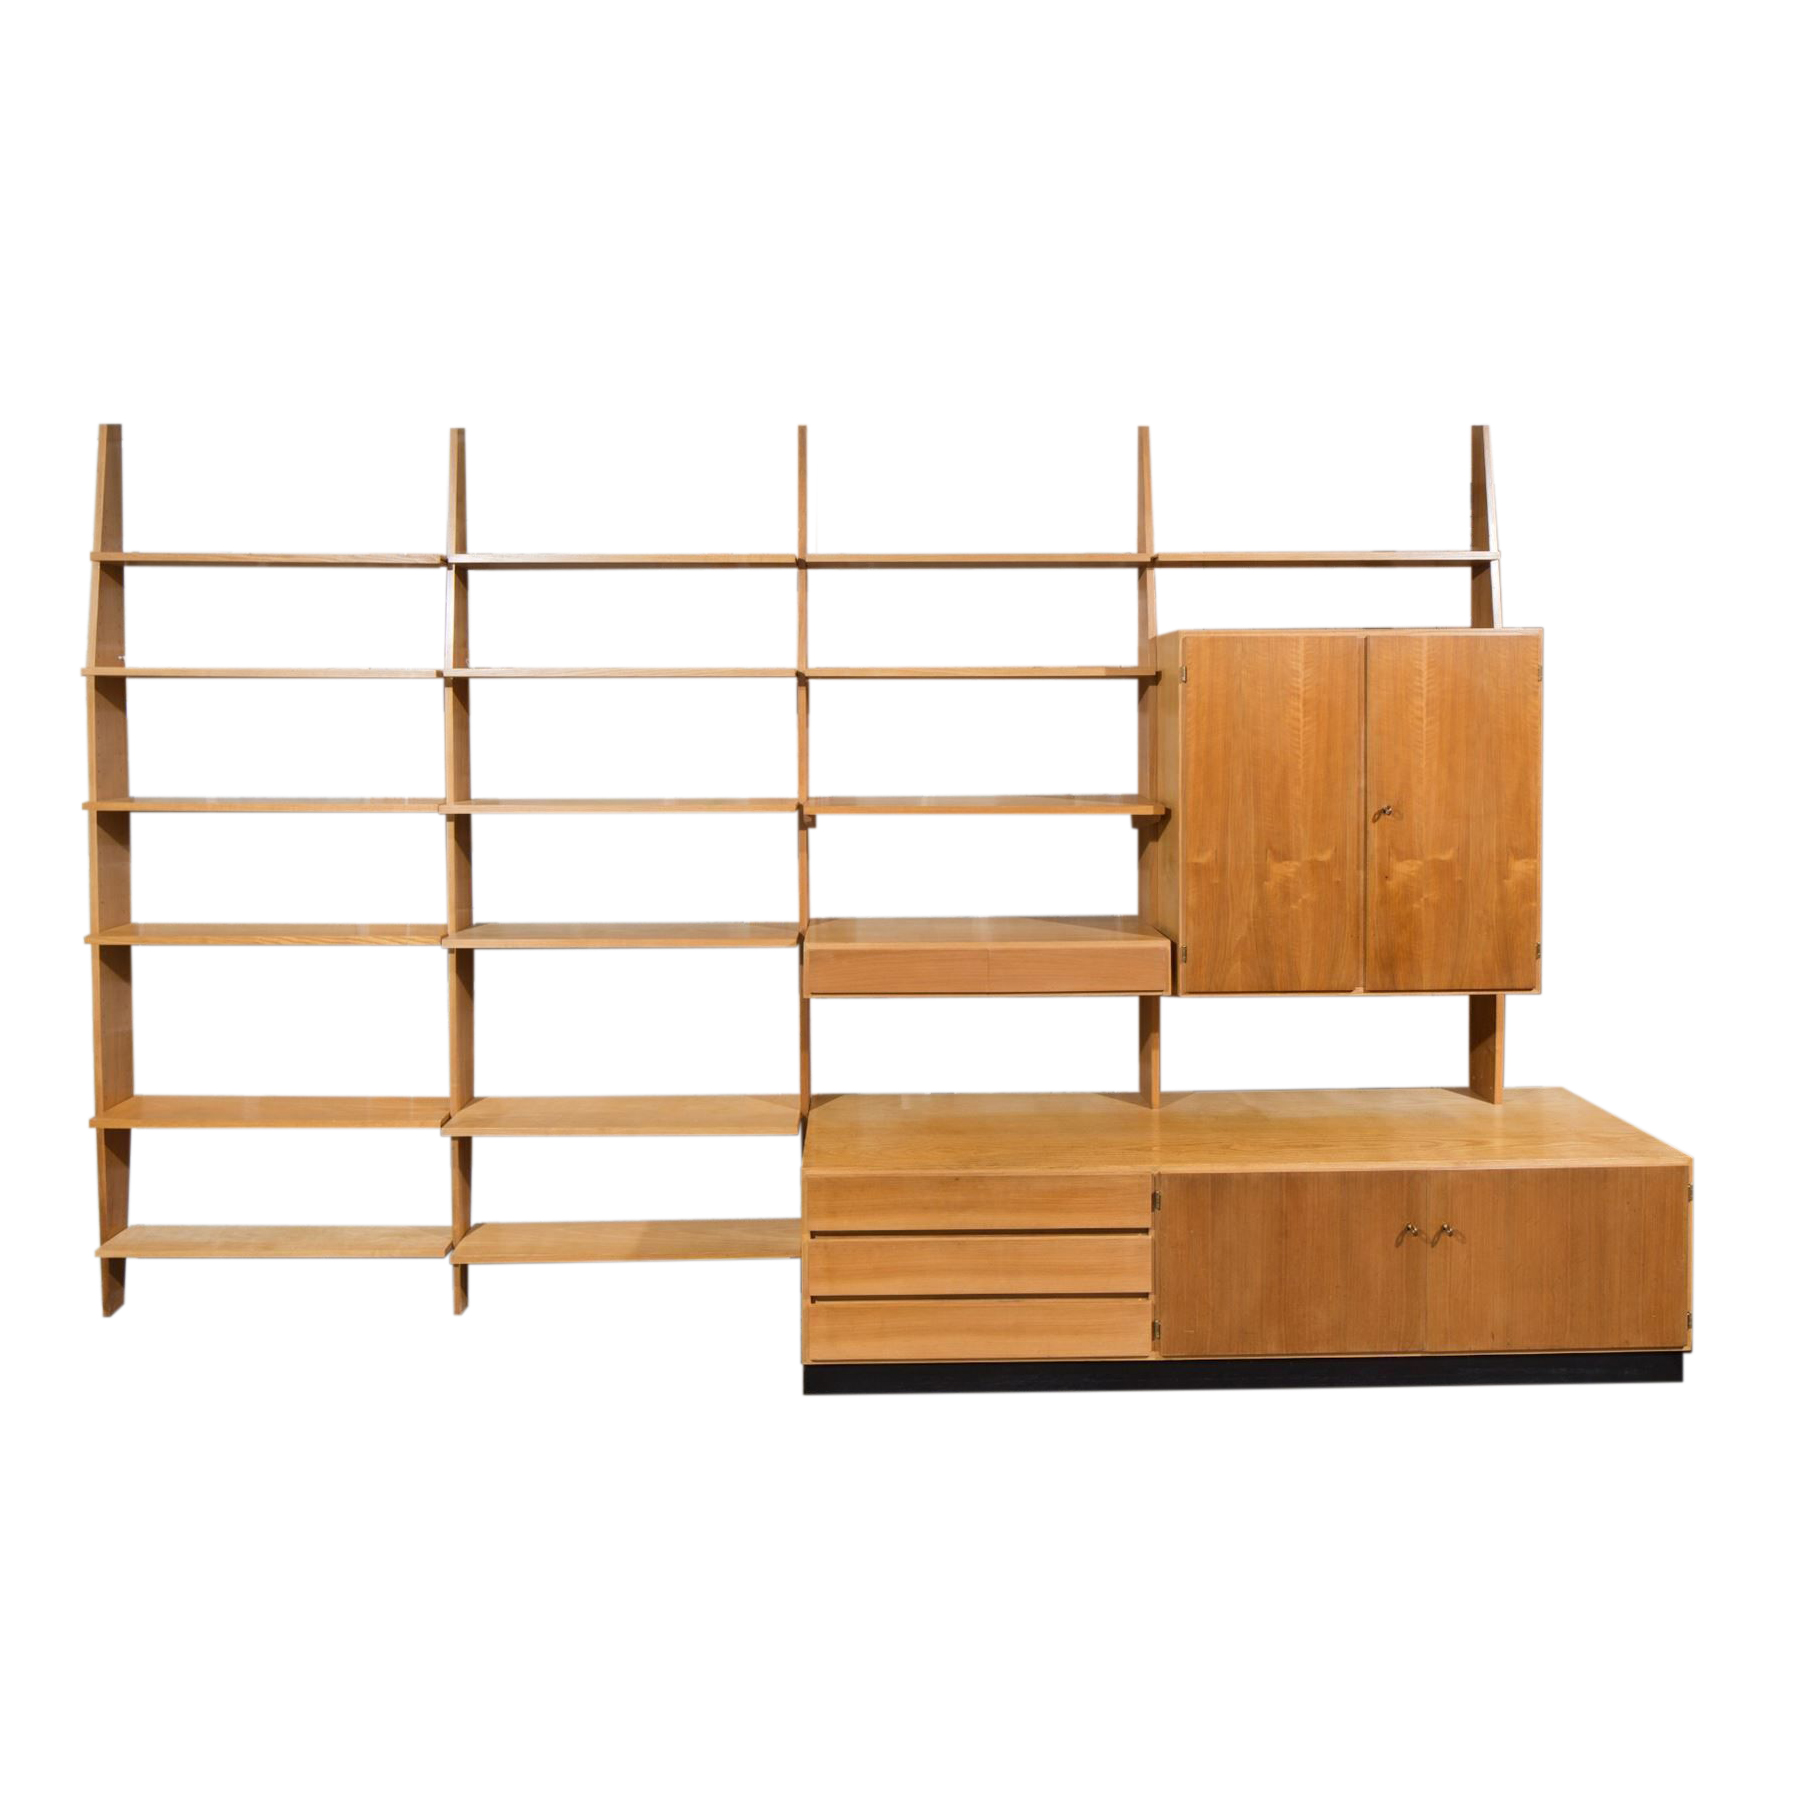 waeckerlin sideboard wall unit vintage idealheim